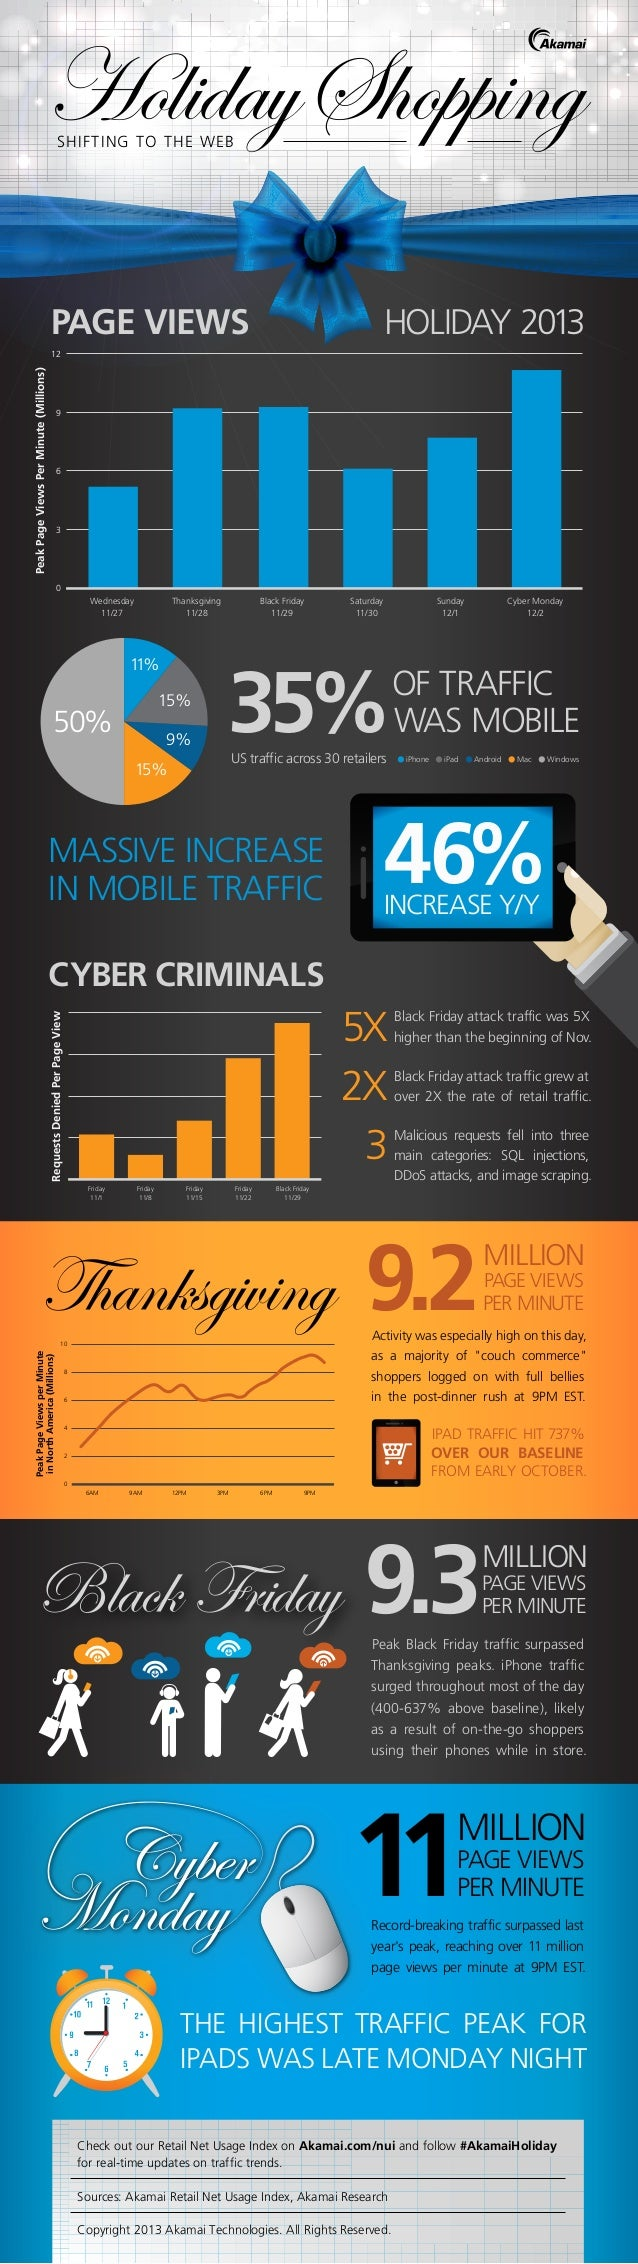 Akamai's Holiday Shopping Infographic